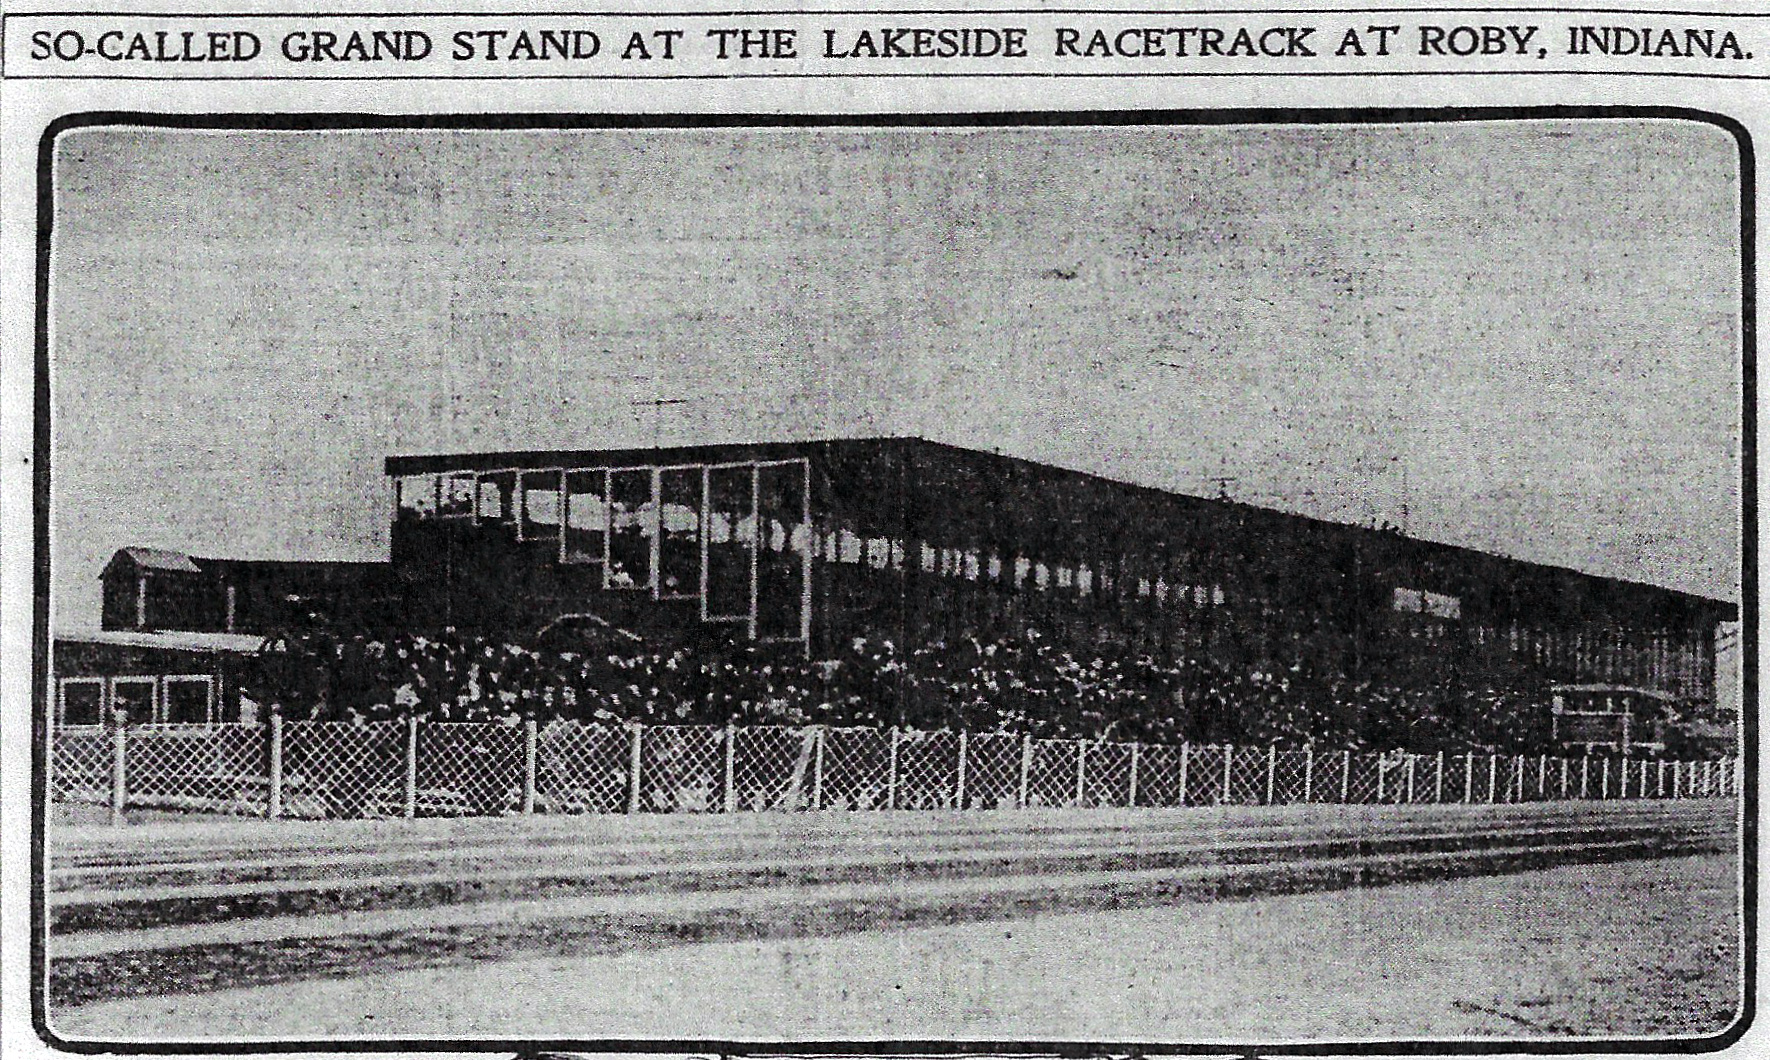 Initially, the horse racing track was called the Roby track. But after two other tracks were opened nearby, the Roby track became known as the Lakeside track. Horse racing in Roby was during the winter months, so the grandstand was enclosed. Spectators could watch the races through the glass windows. Still, judging from the 1901 headline, the Chicago Tribune was not a fan of the grandstand.